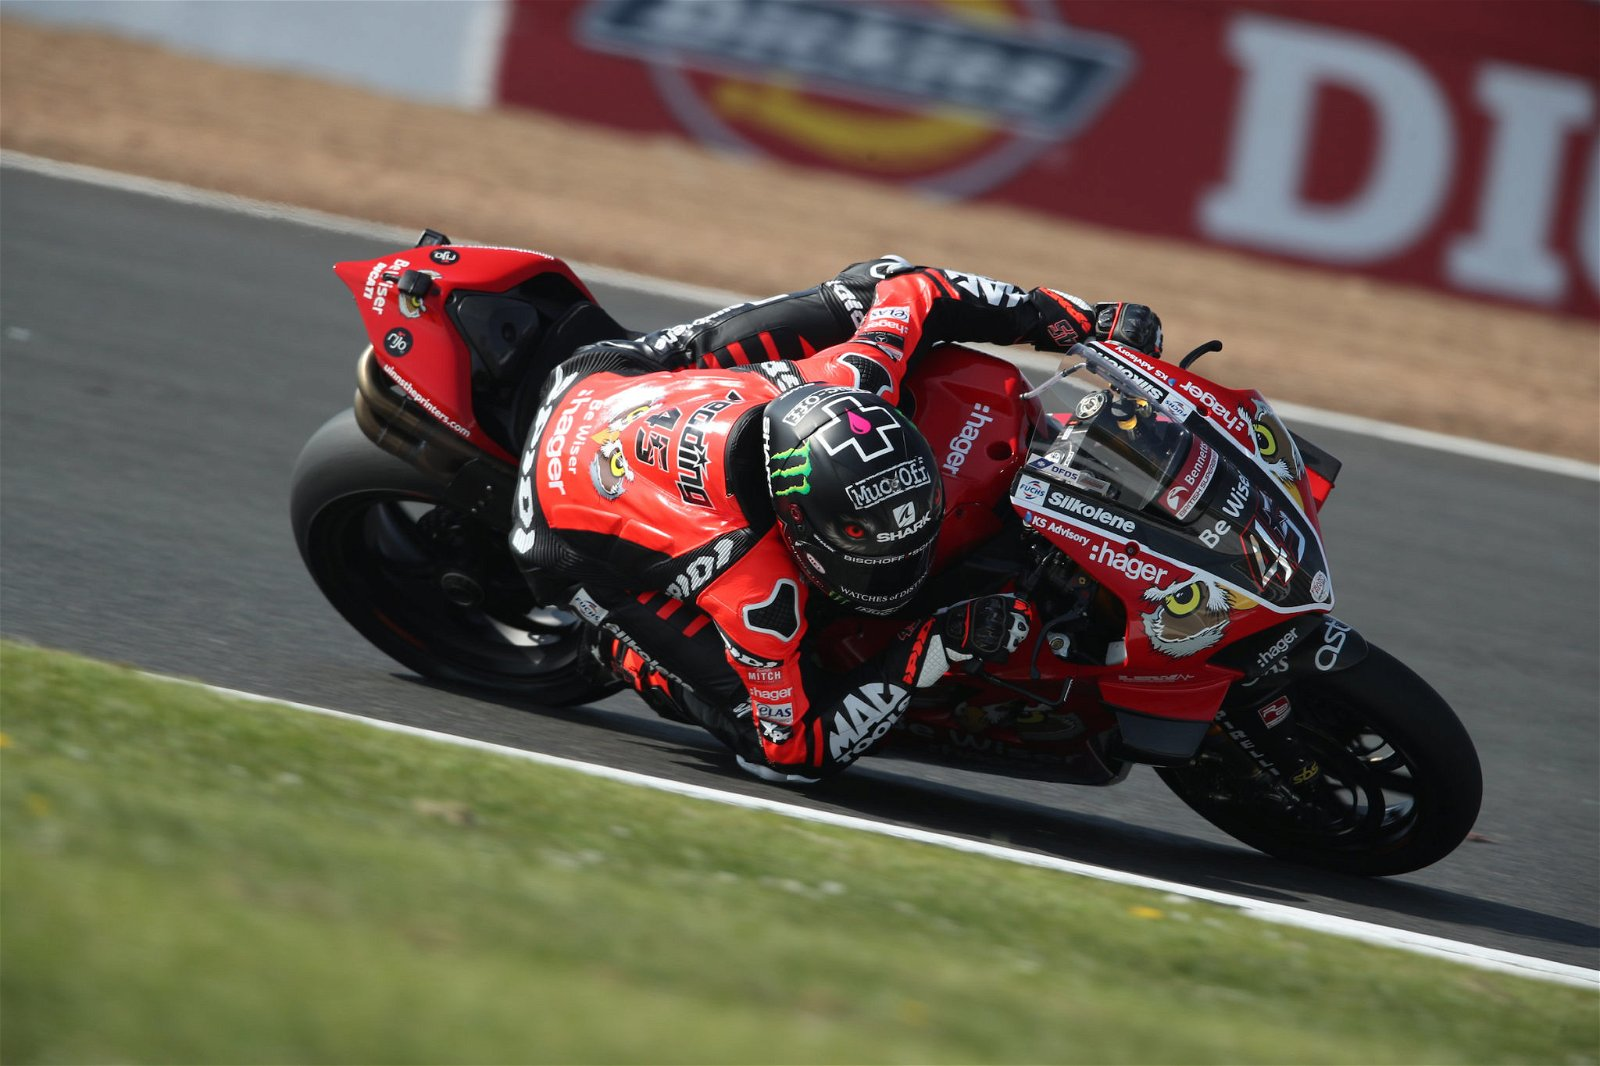 Scott Redding BSB Be Wiser Ducati